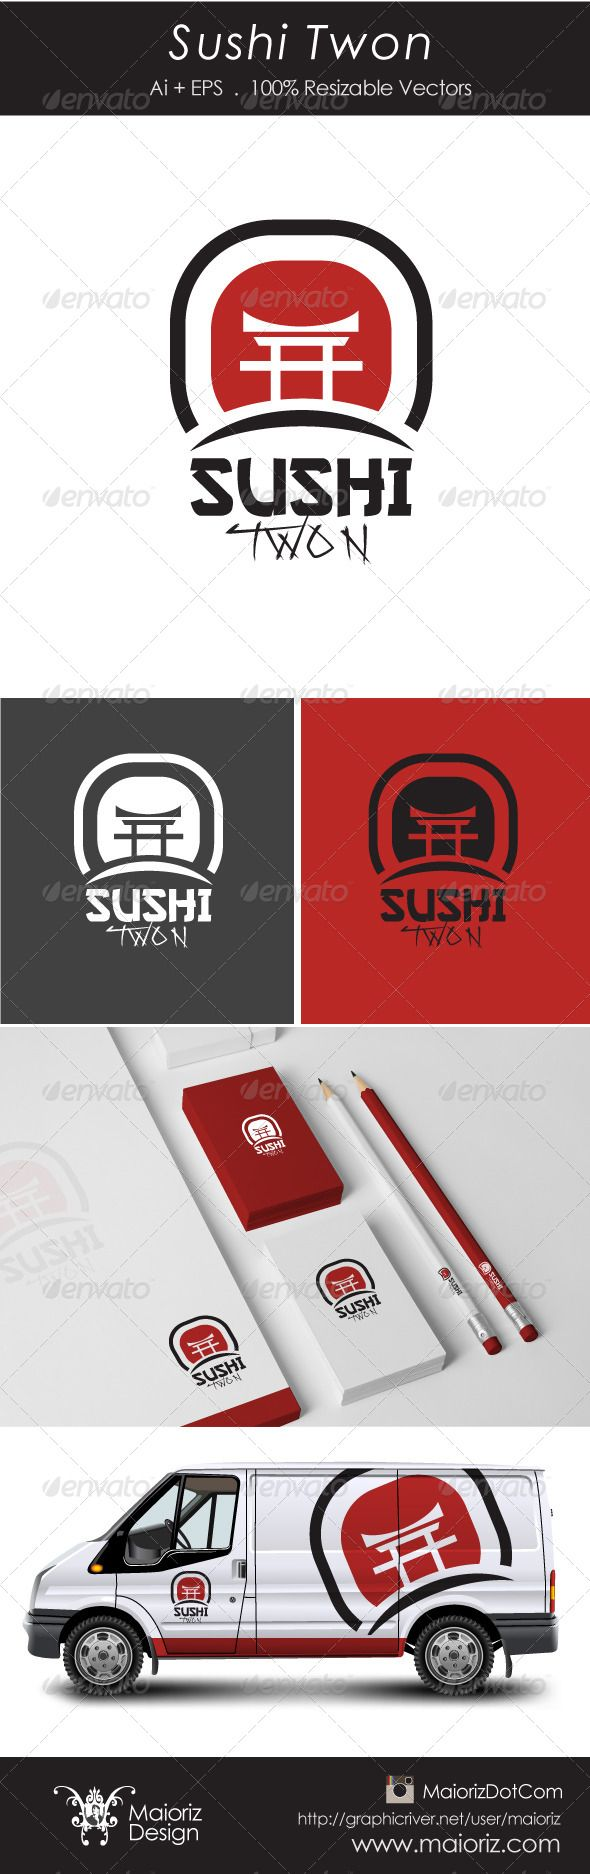 Sushi Twon Logotype  #GraphicRiver                                File Description  This is custom logo template. Illustrator (AI), Vector (EPS) logo files included in this download. You can customize to your own branding. All colors and text can be modified.